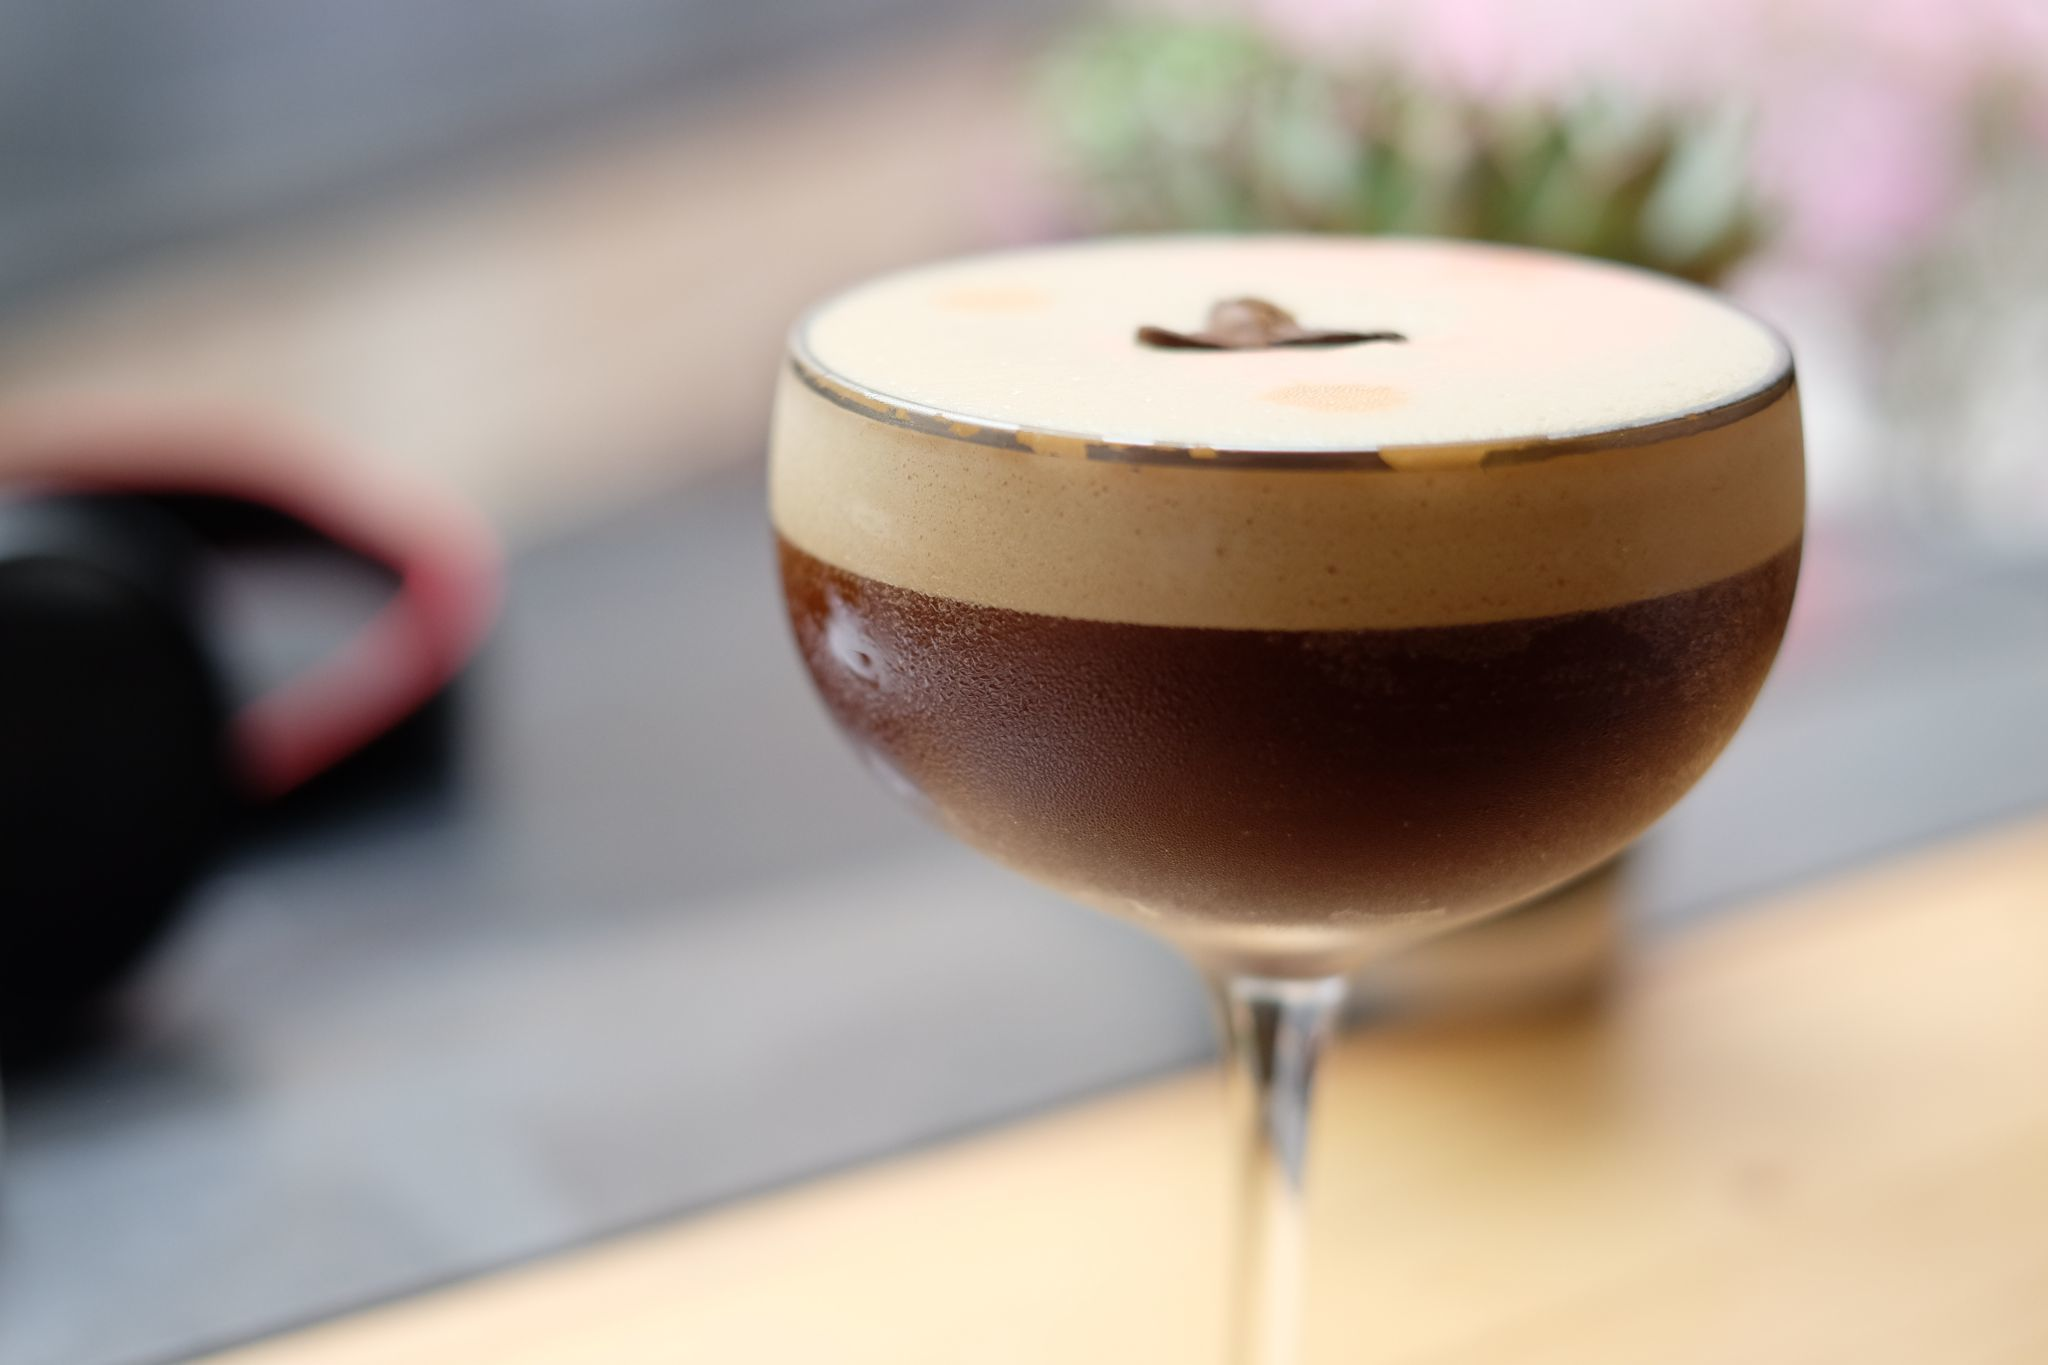 Espresso martini in flat champagne glass with froth garnished with coffee beans